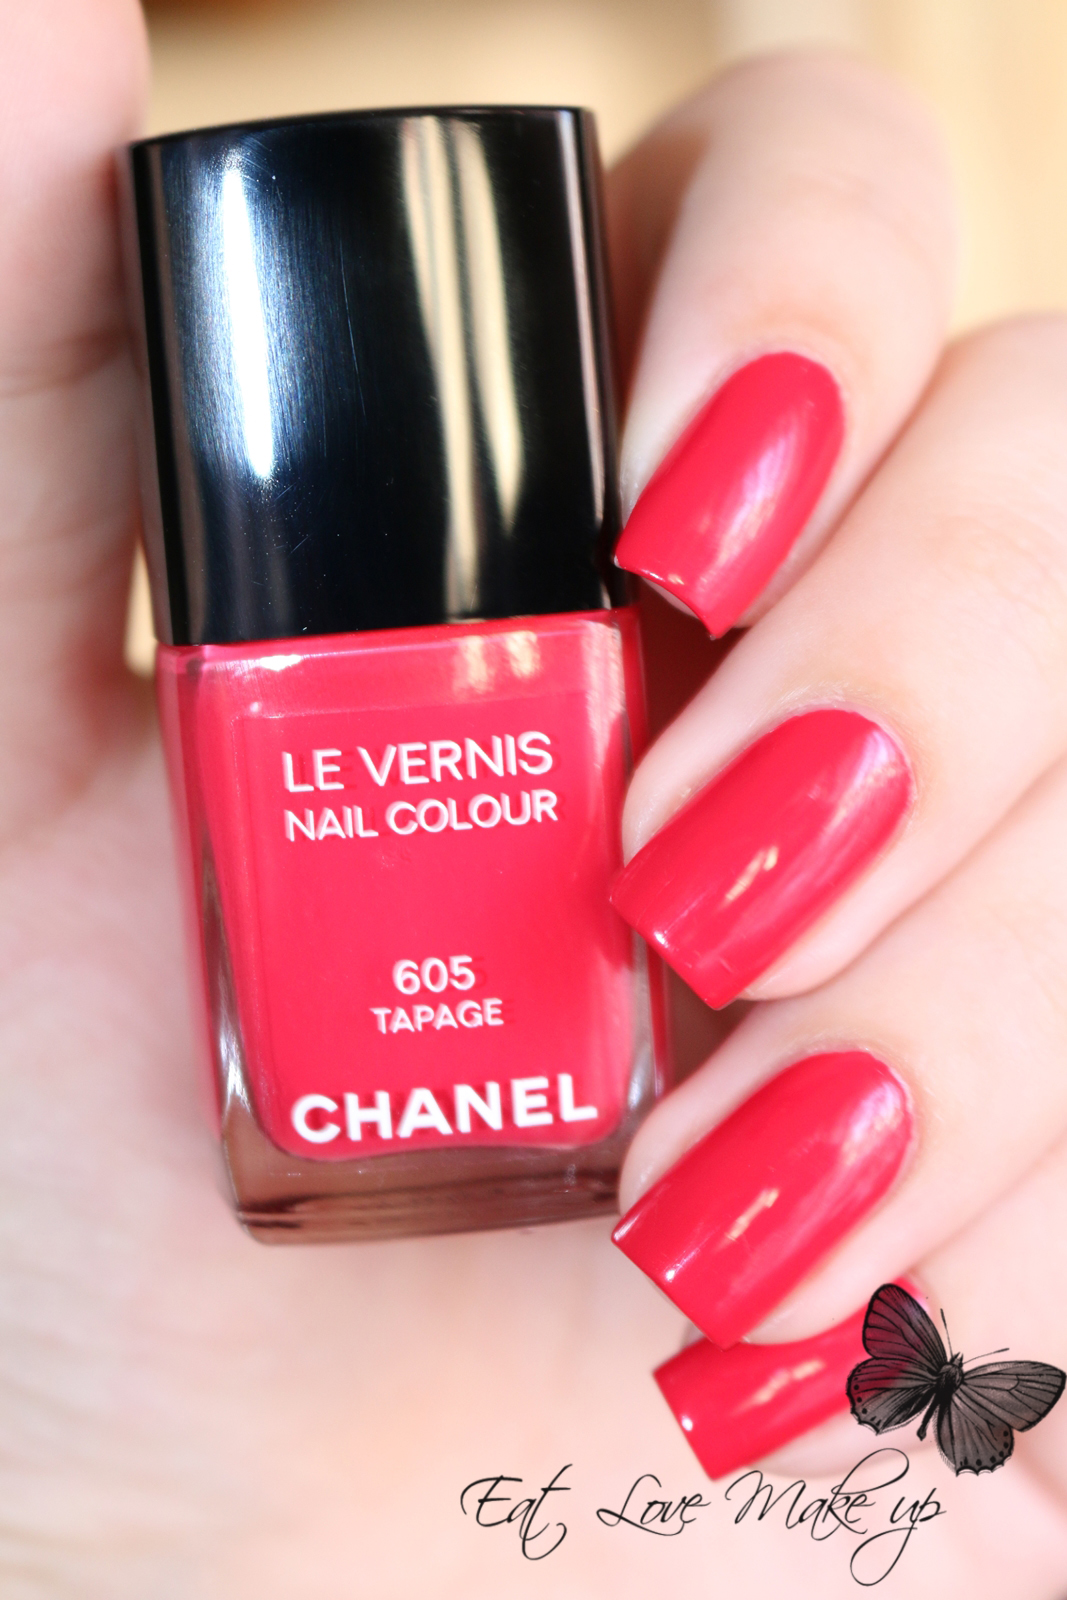 Chanel Le Vernis Nail Colour 605 Tapage